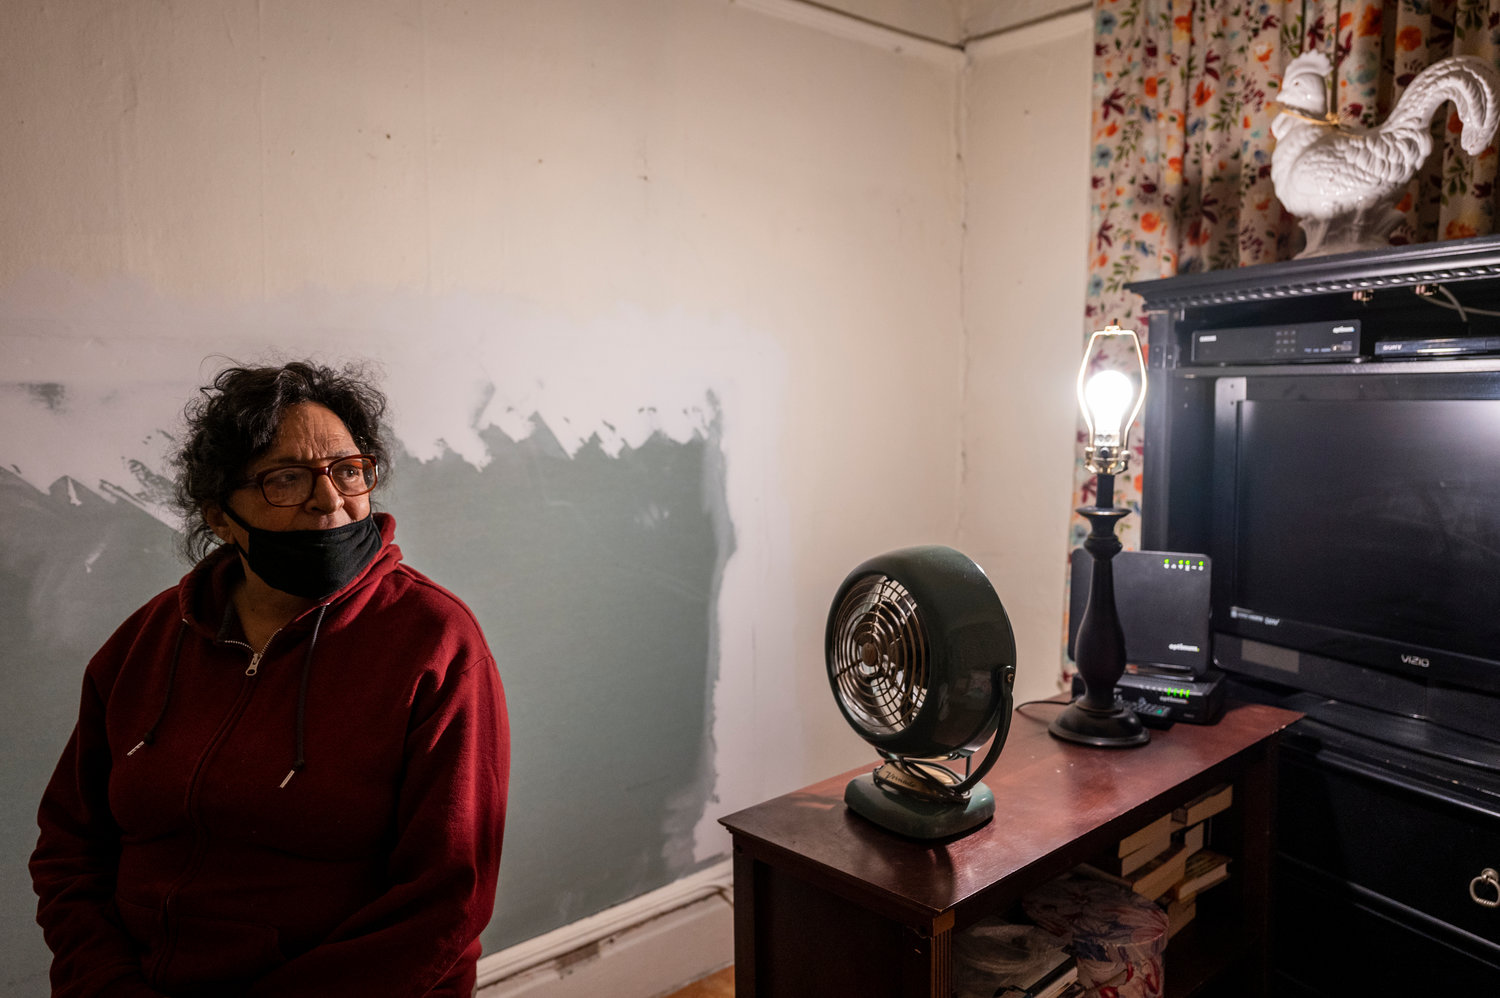 Regina Hall has lived at 3801 Review Place for 50 years, but says over the last few years, unwelcome guests from the rodent family have joined her. Even when a new landlord took over, Hall says the mouse infestation only got worse.